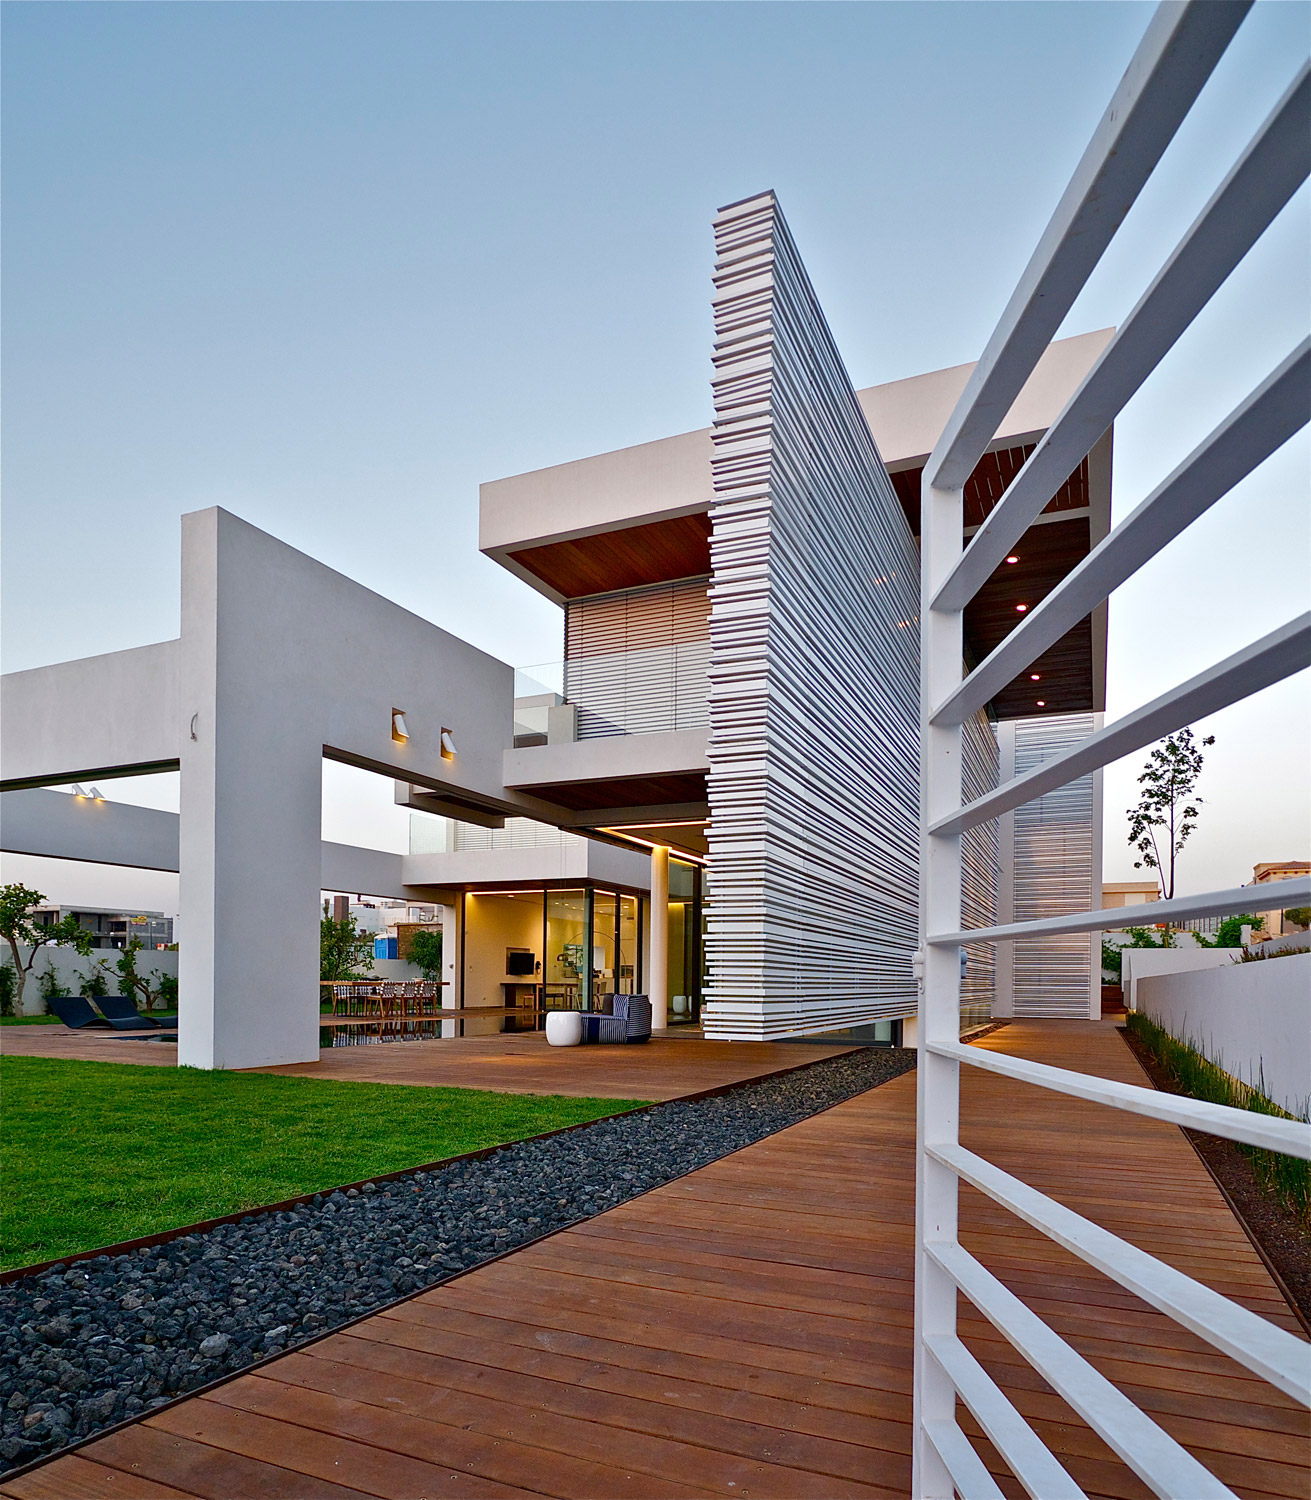 Modern luxury villas designed by gal marom architects for Luxury homes architecture design